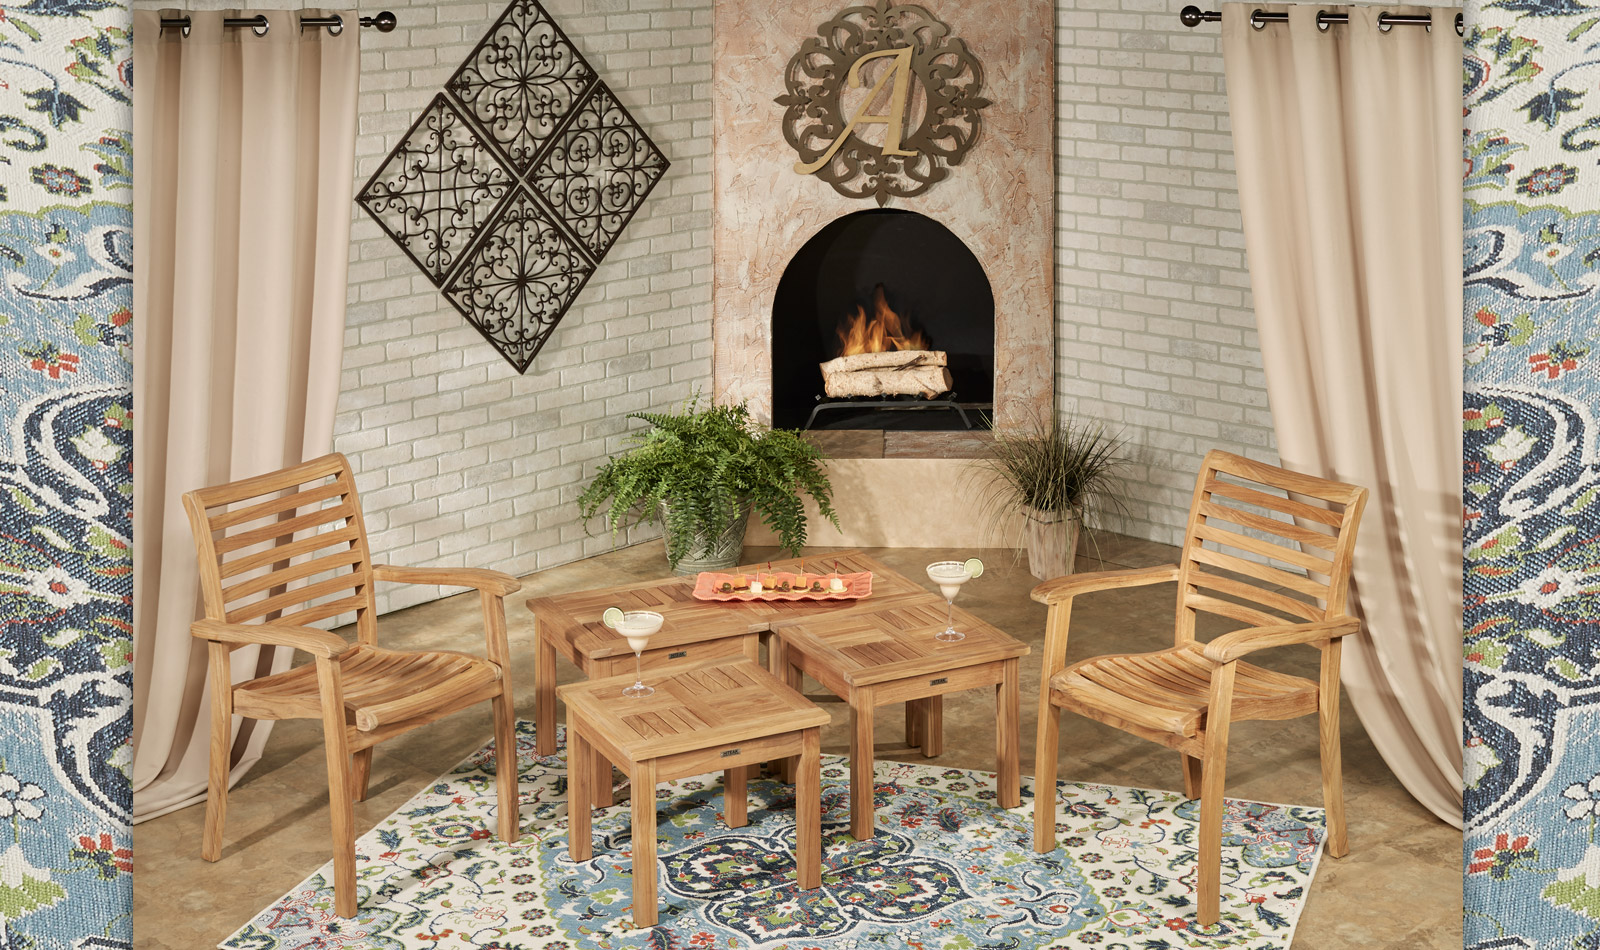 Get the Look - Oceana Teak Backyard Patio 2